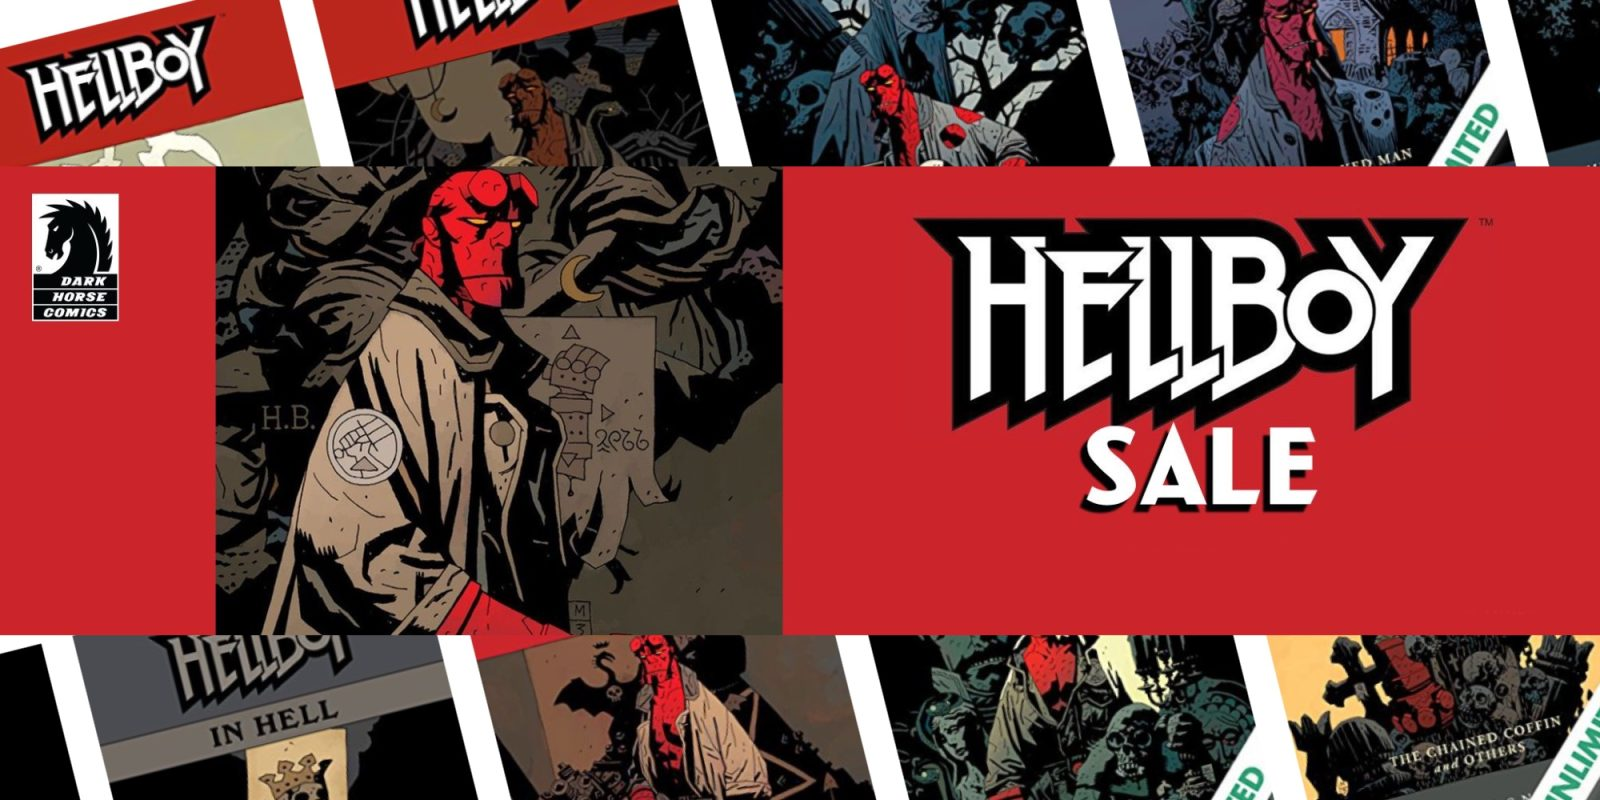 Expand your digital comic library w/ Hellboy, Attack on Titan and other issues from $1 at ComiXology